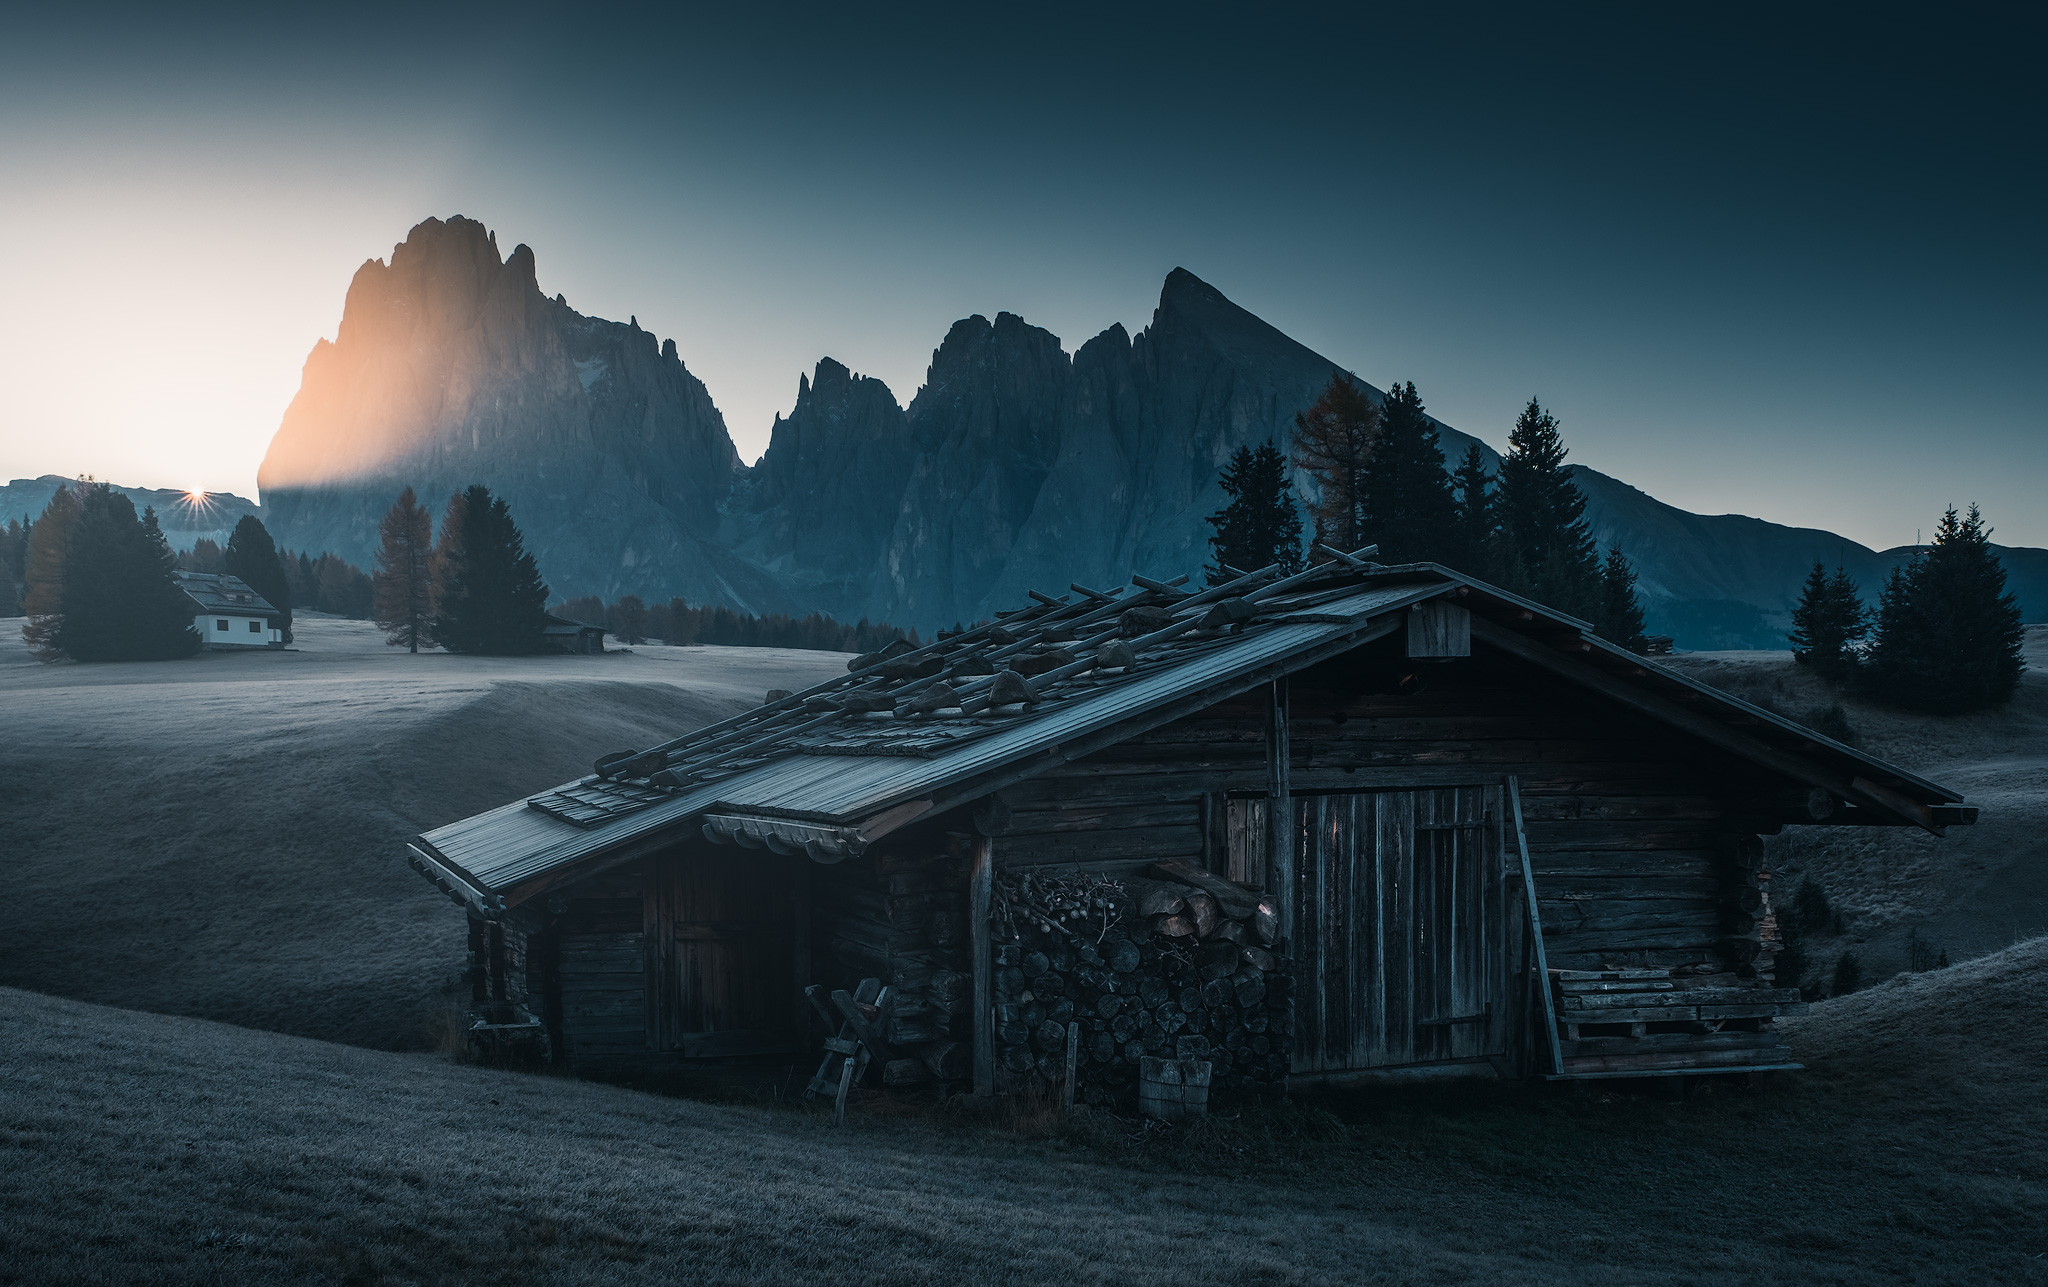 dolomites_workshop_06.jpg